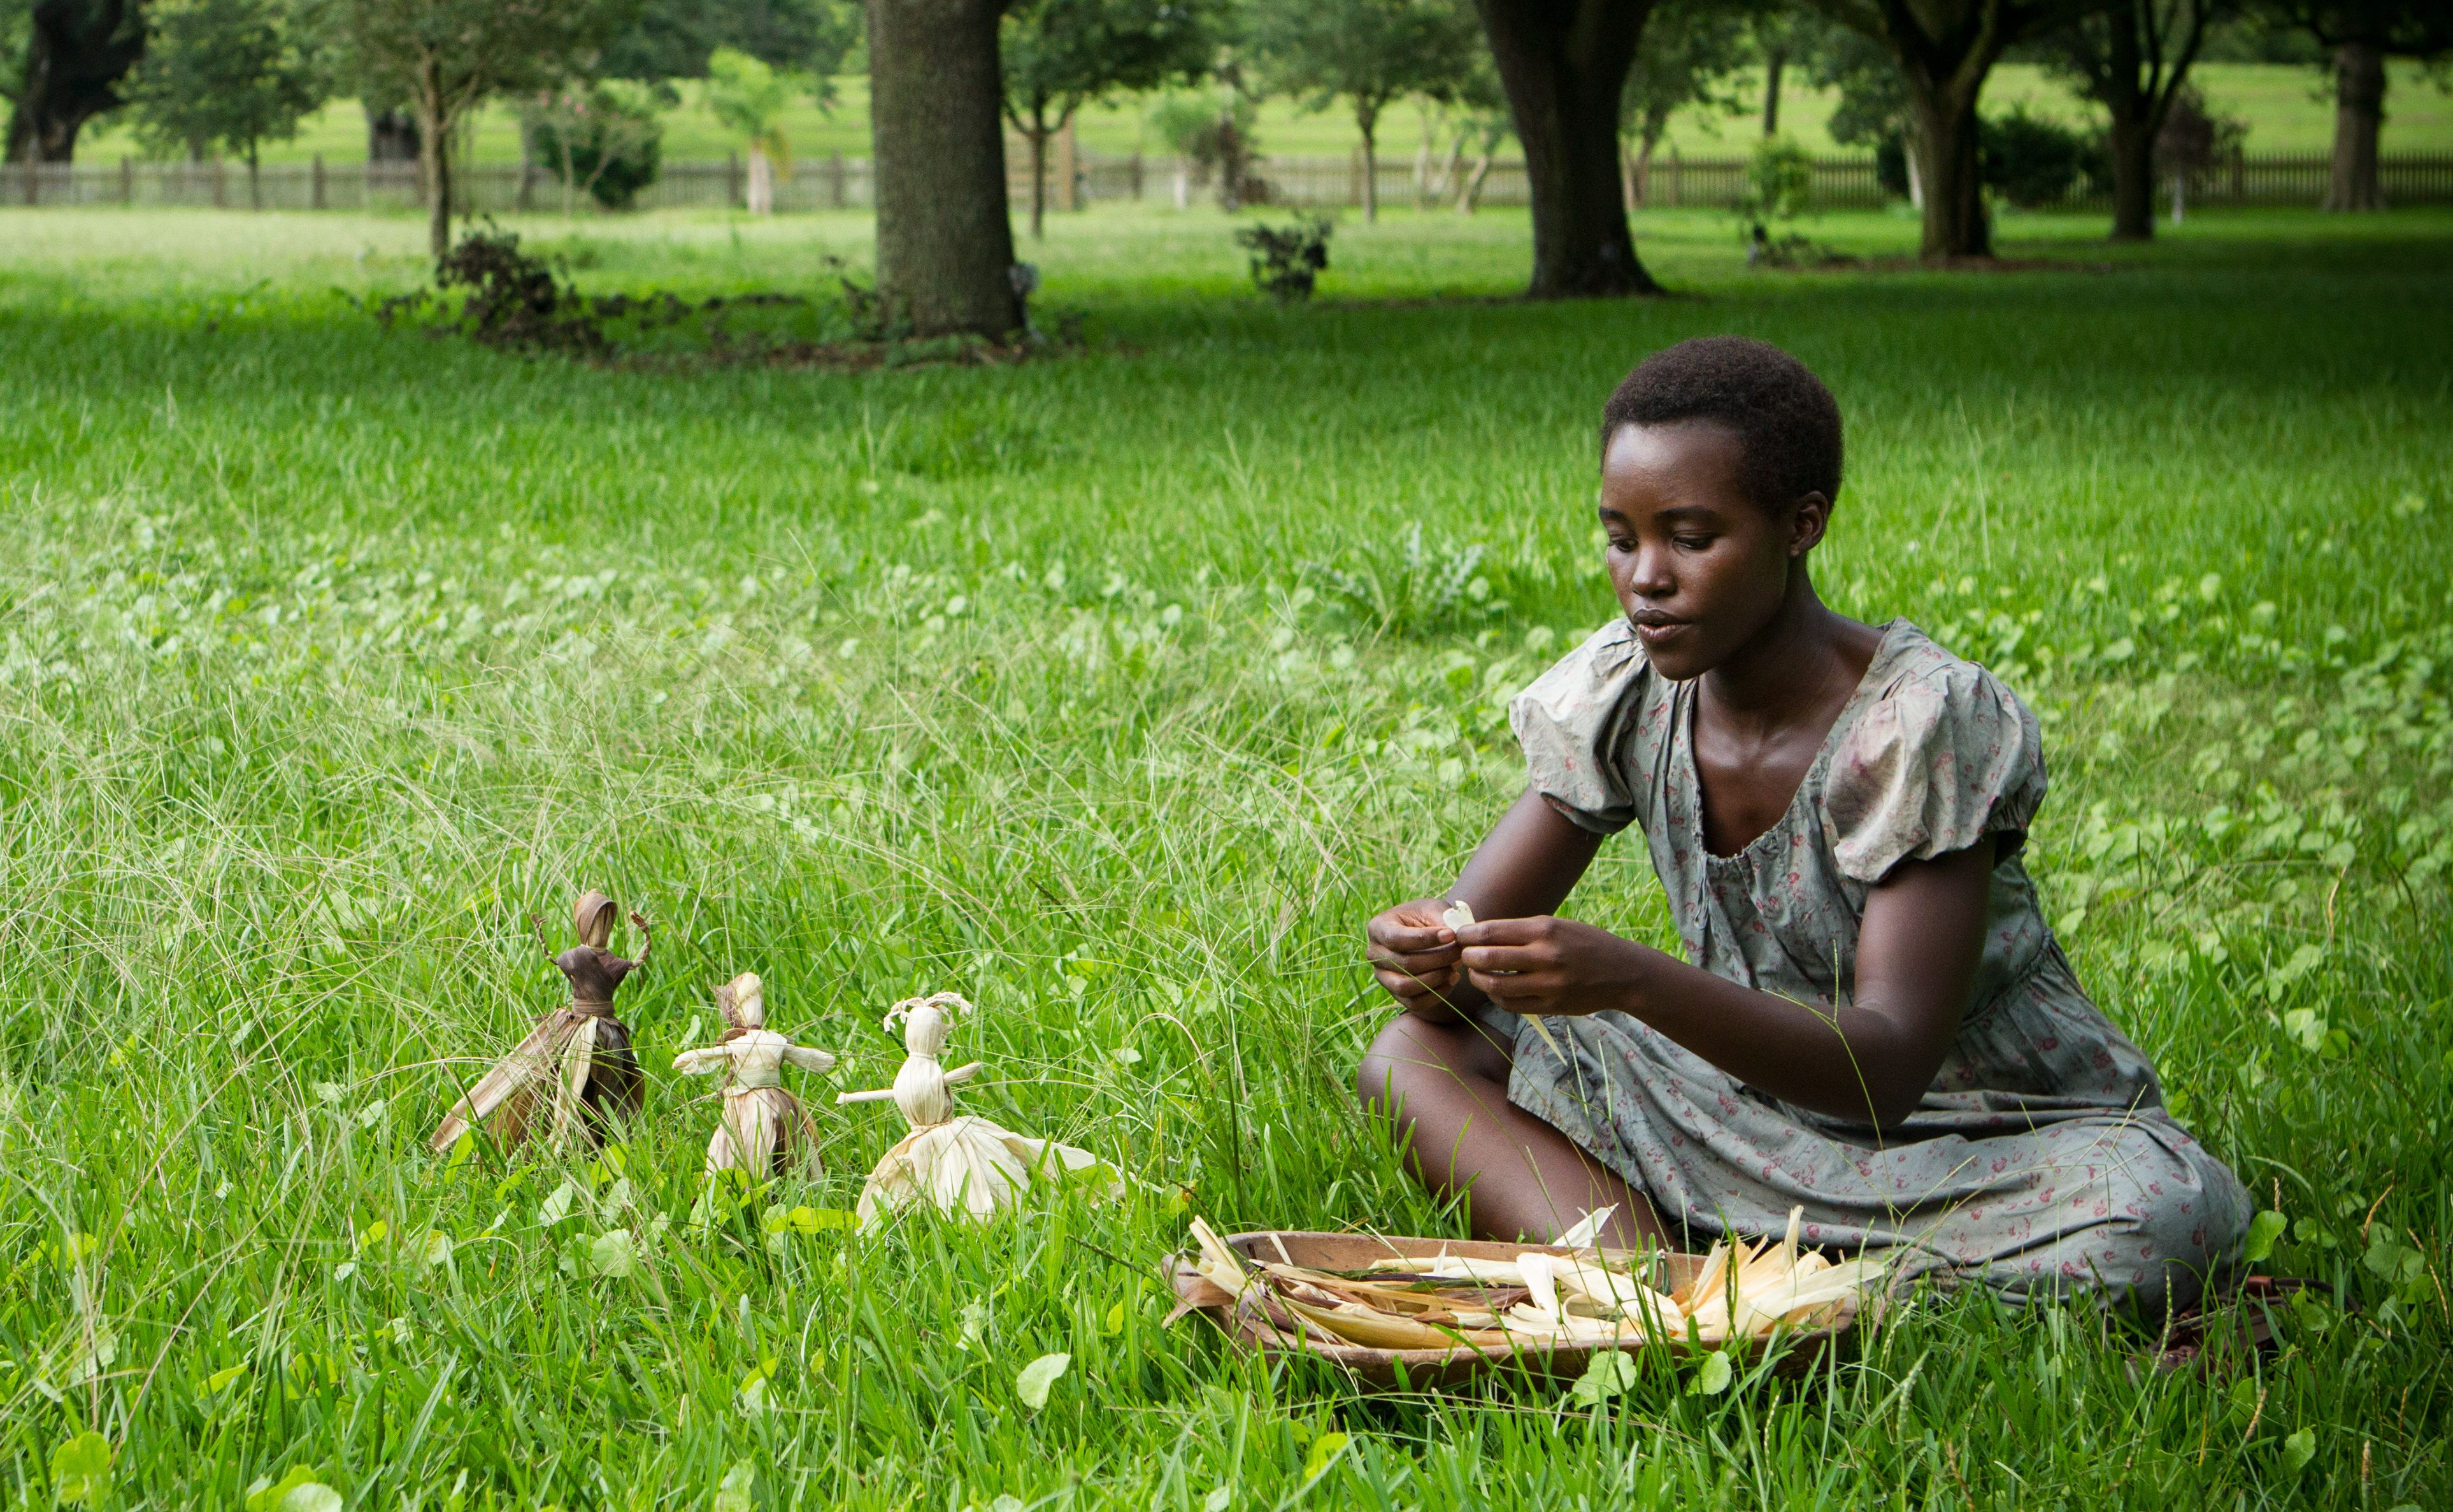 Patsey in the grass - 12 Years A Slave